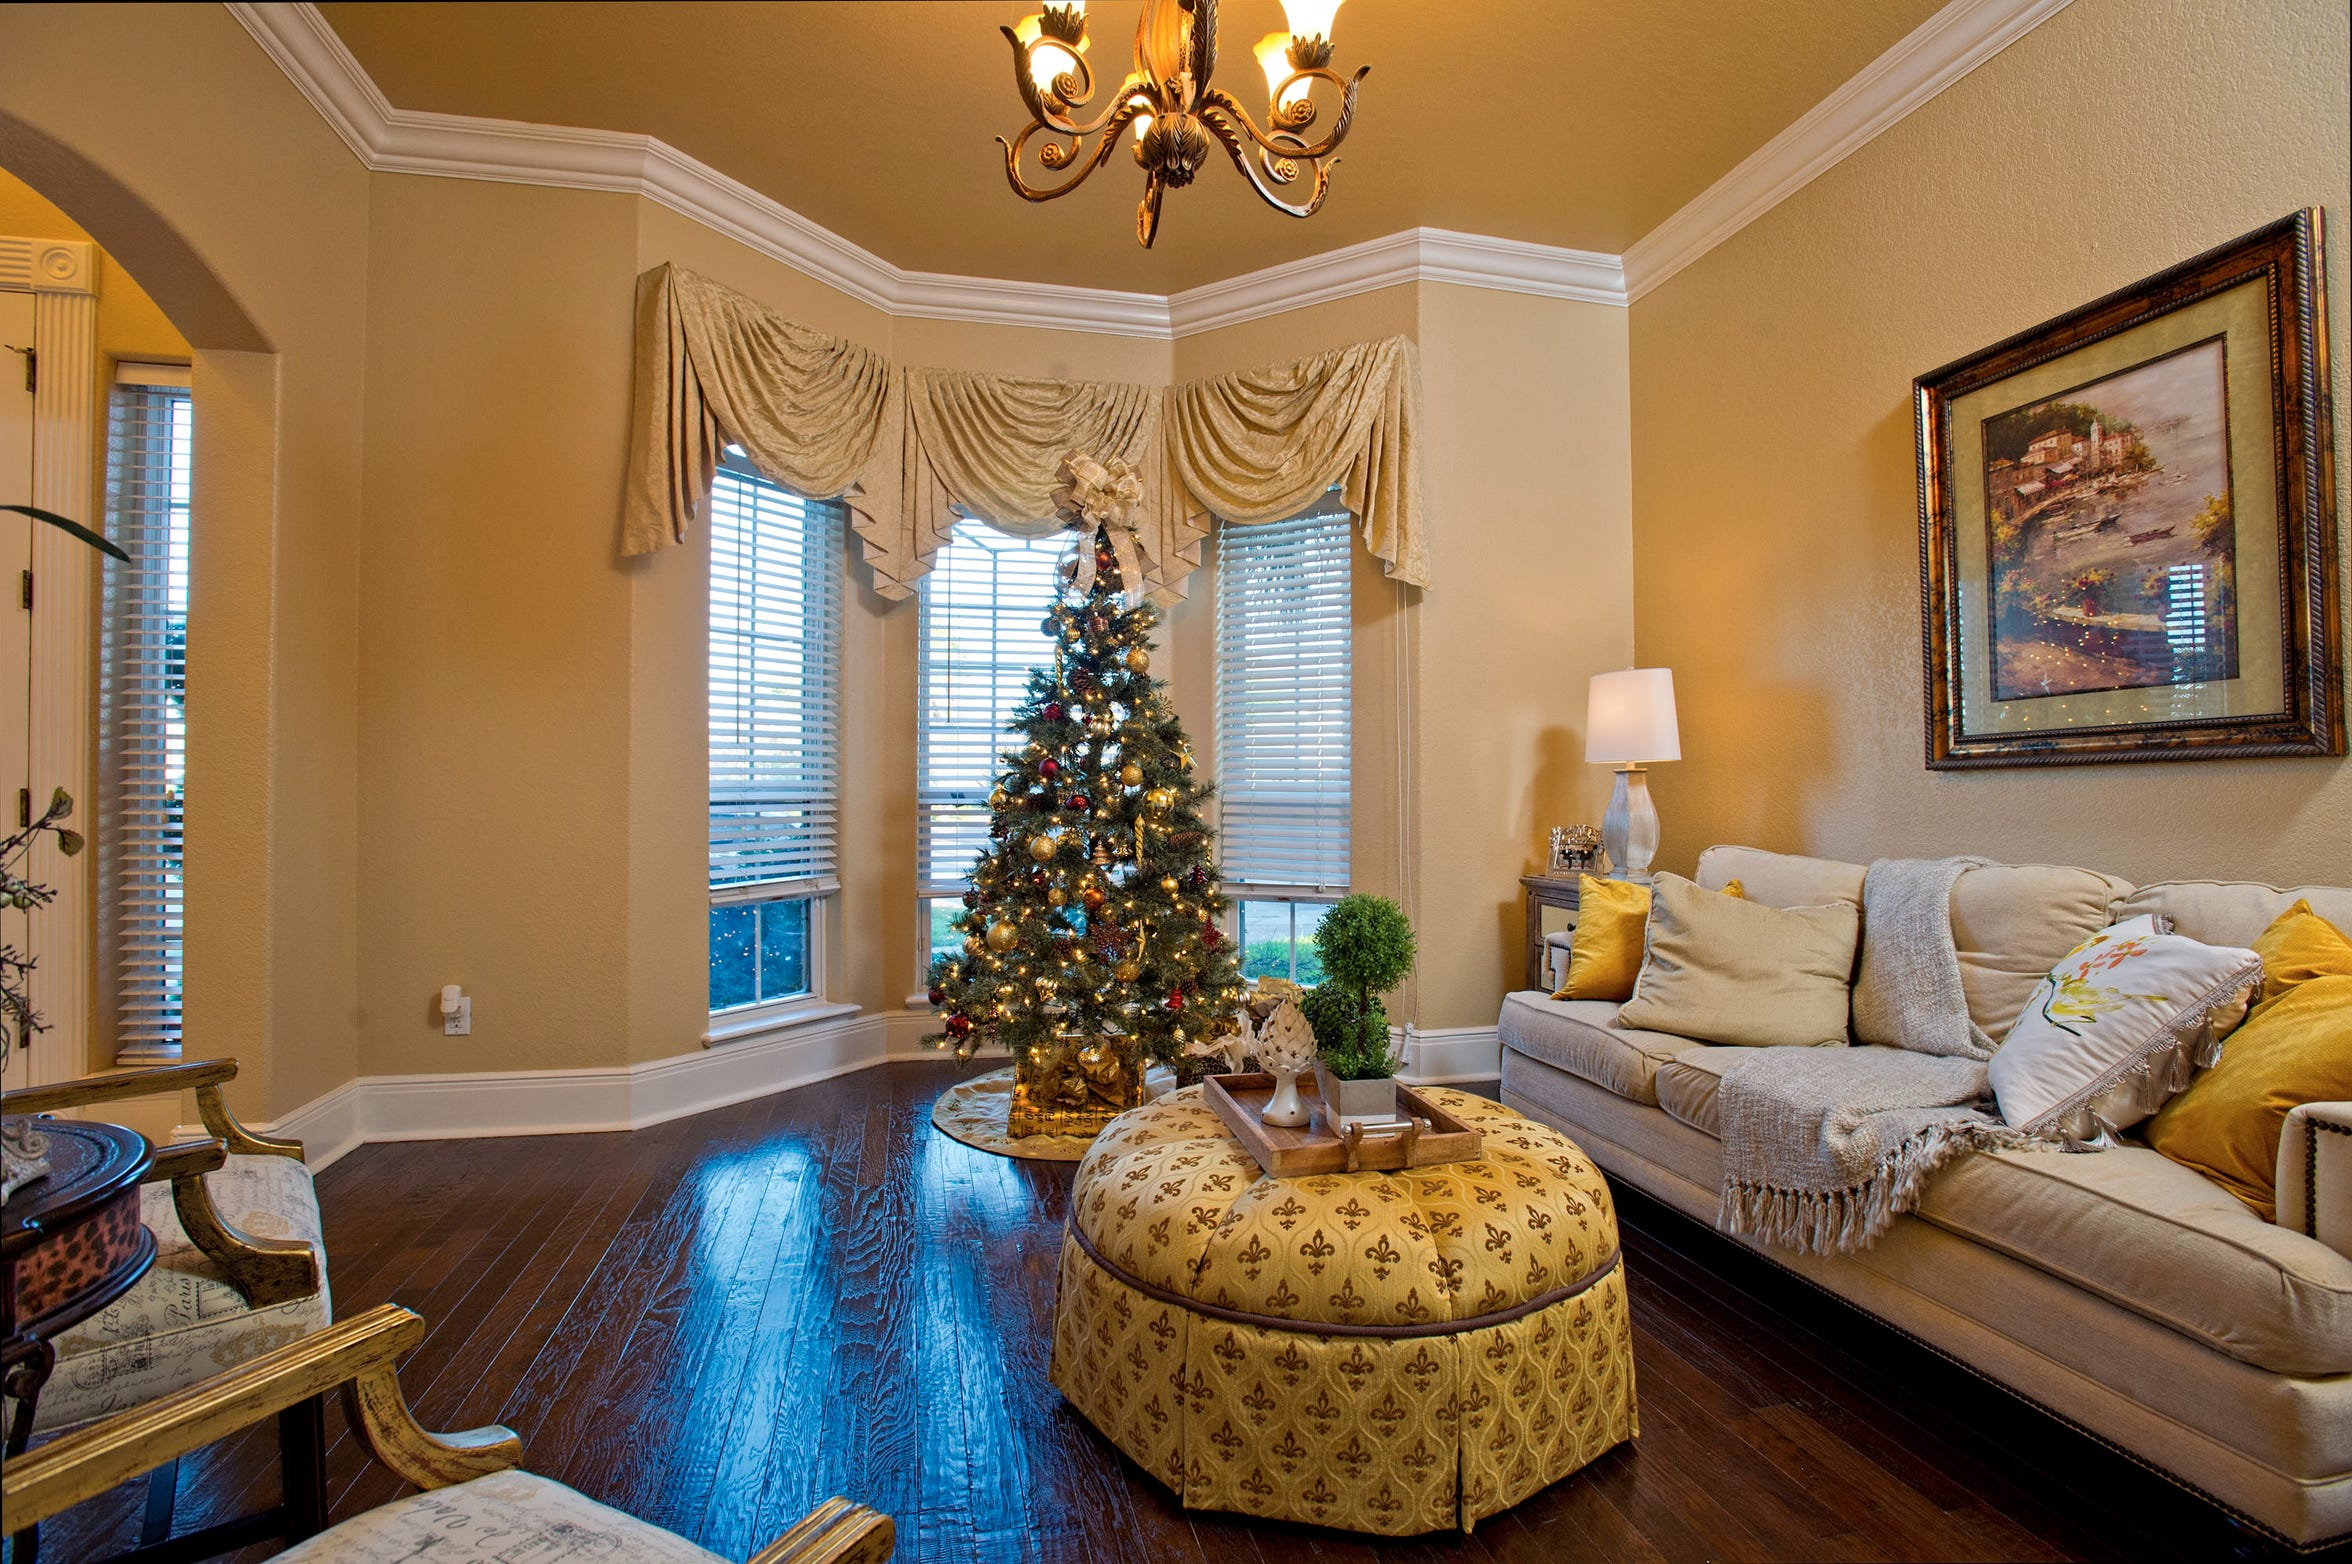 A formal living area just off of the entry foyer features wood floors, thick crown molding and a bay window